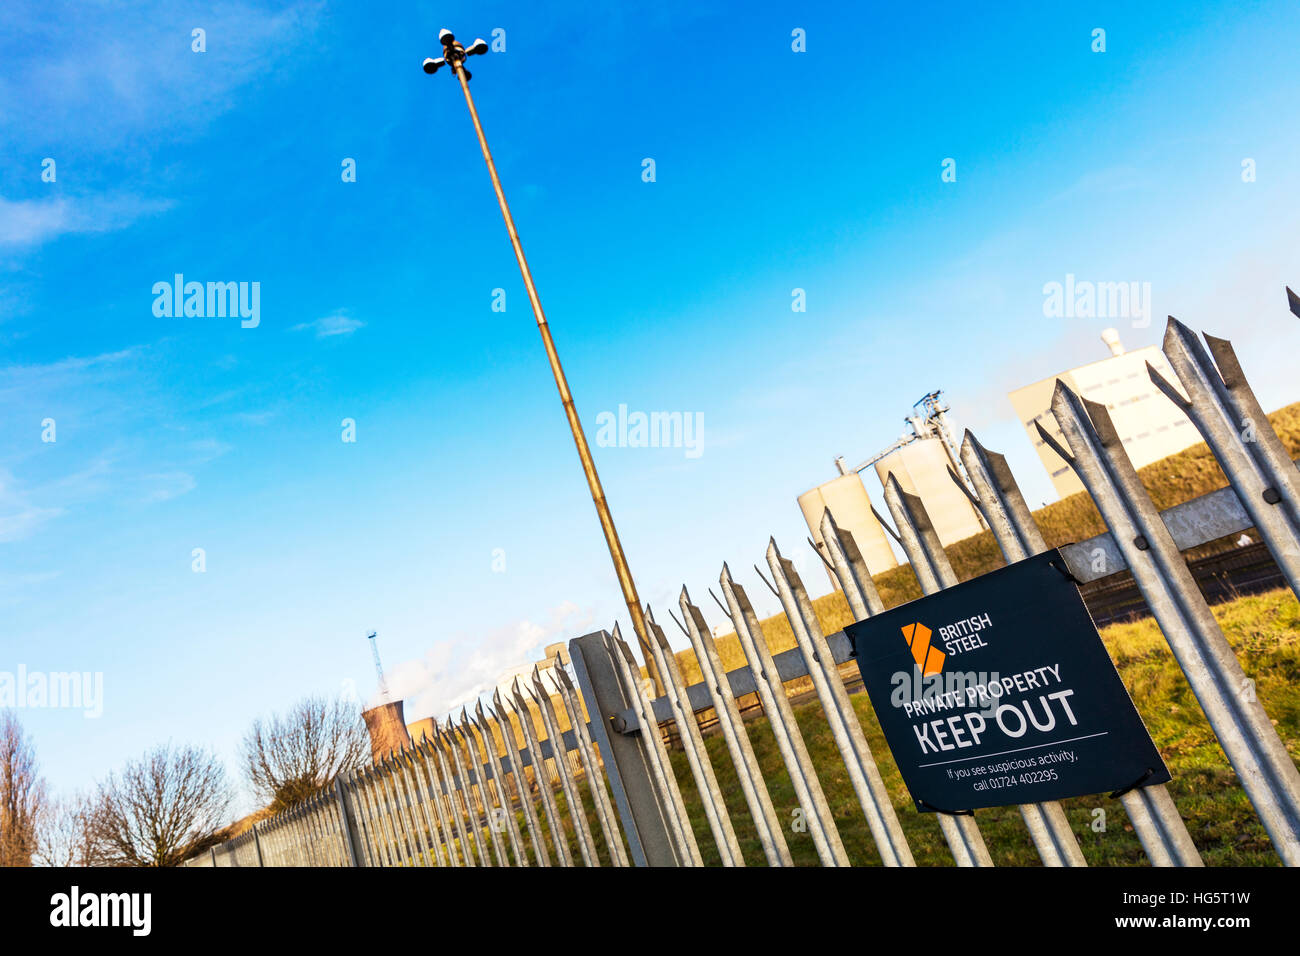 British steel Scunthorpe, Scunthorpe steelworks keep out sign on fence in town in North Lincolnshire, England UK Stock Photo